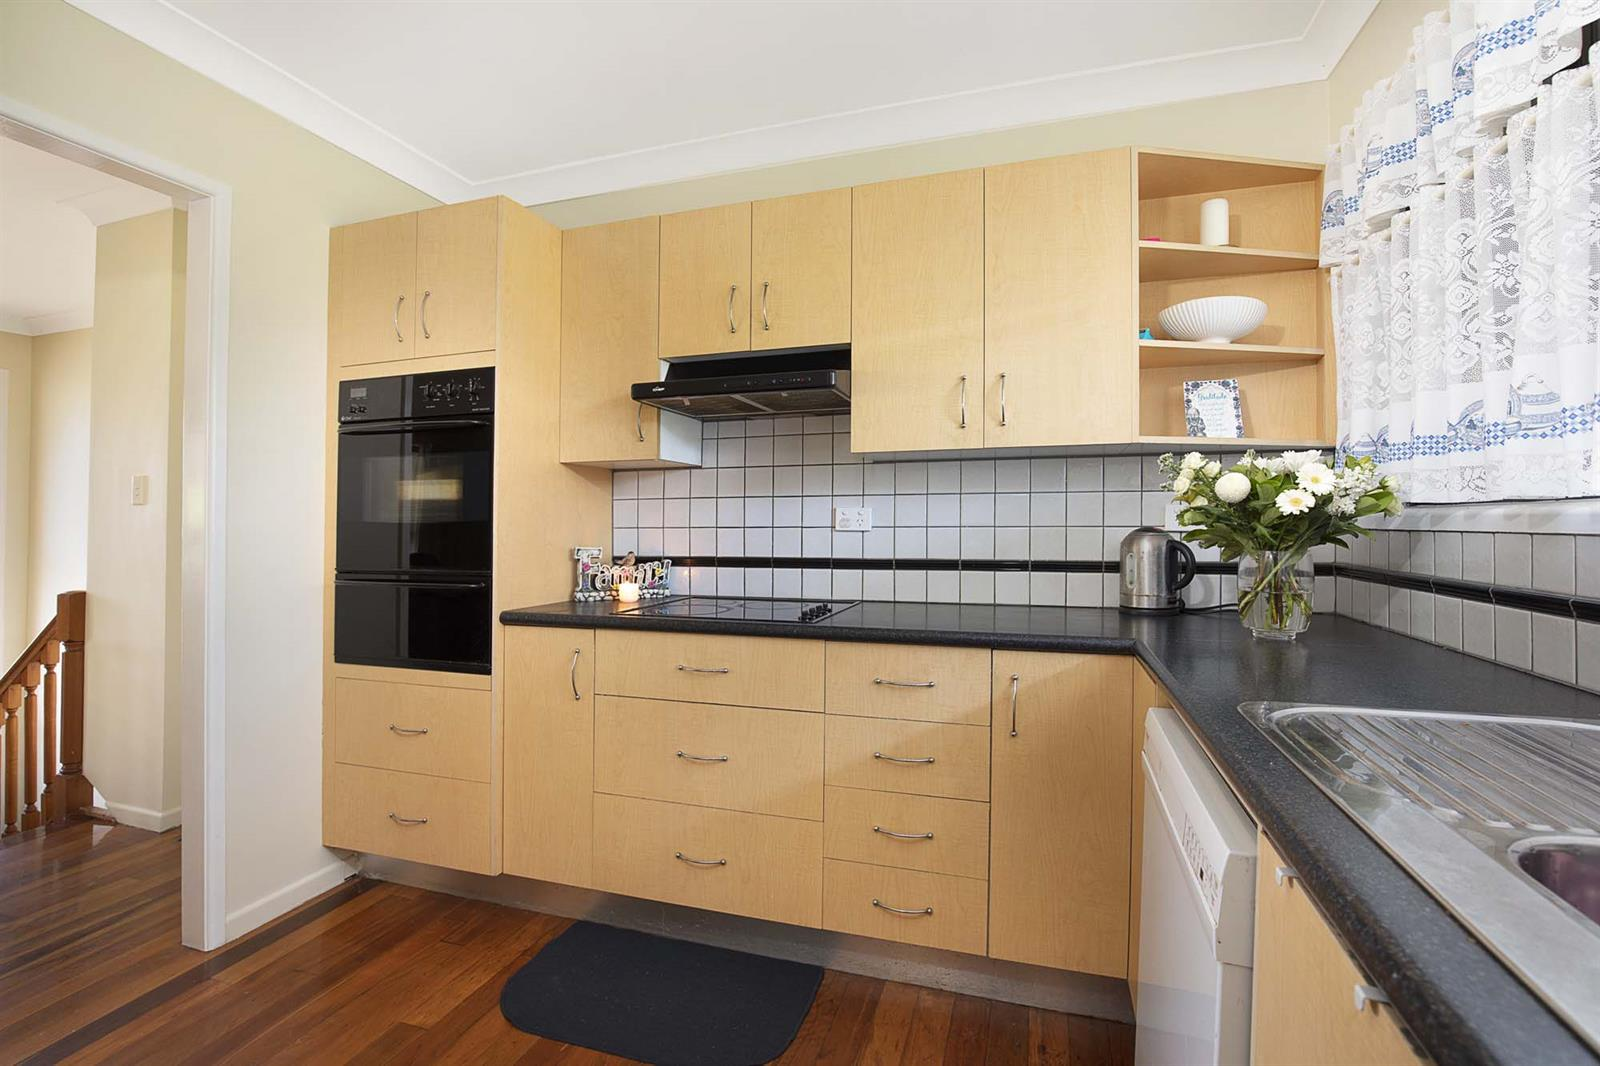 20 Gilmour St CHERMSIDE WEST QLD 4032 Image 2